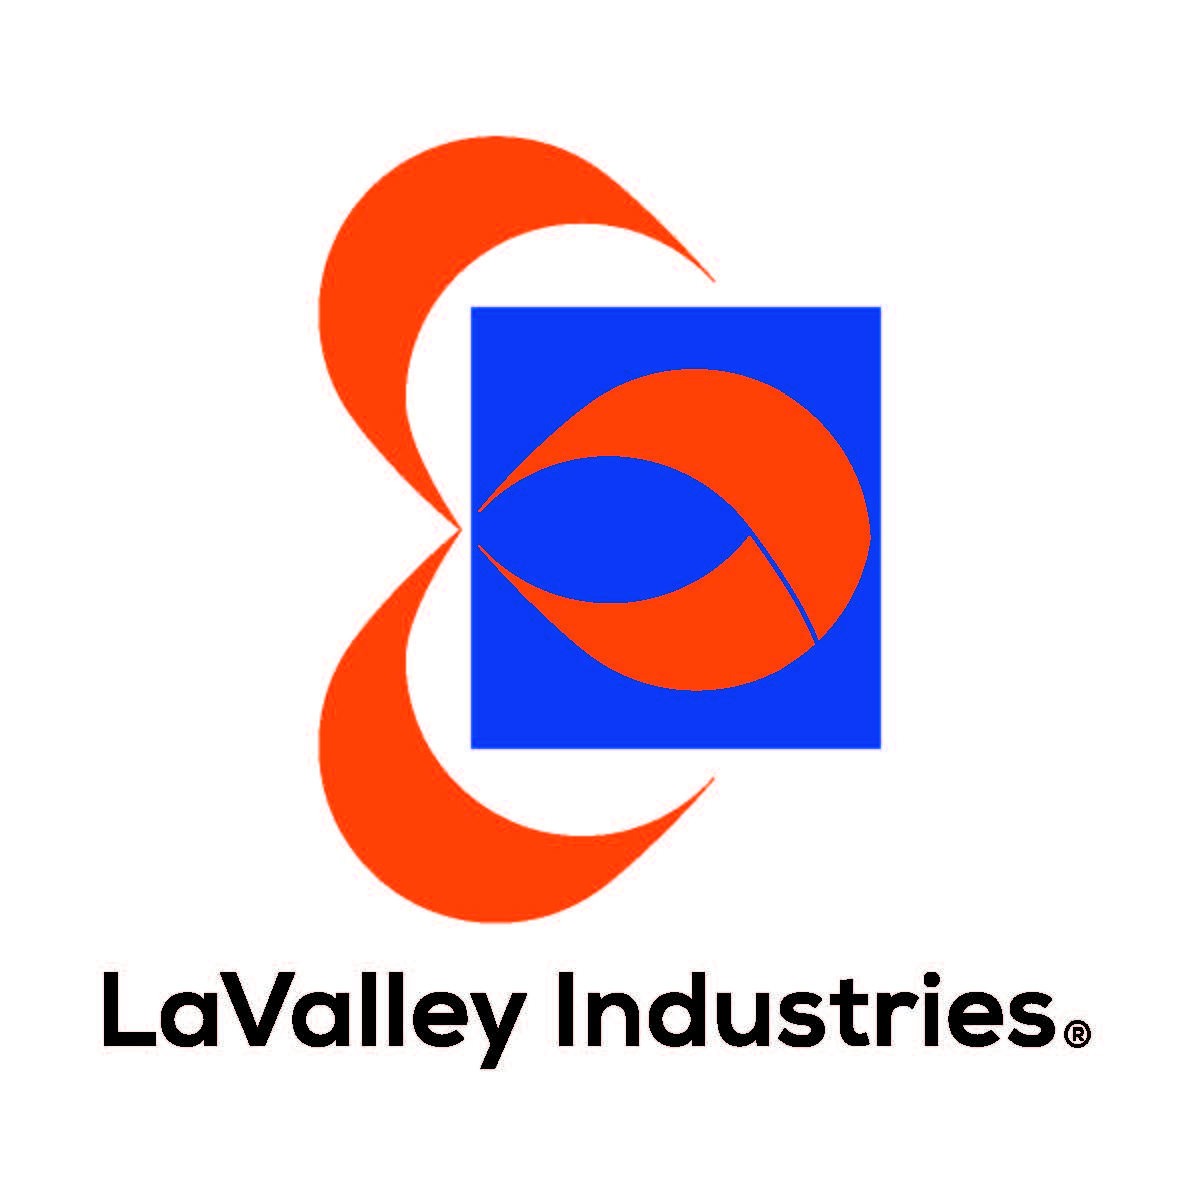 LaValley